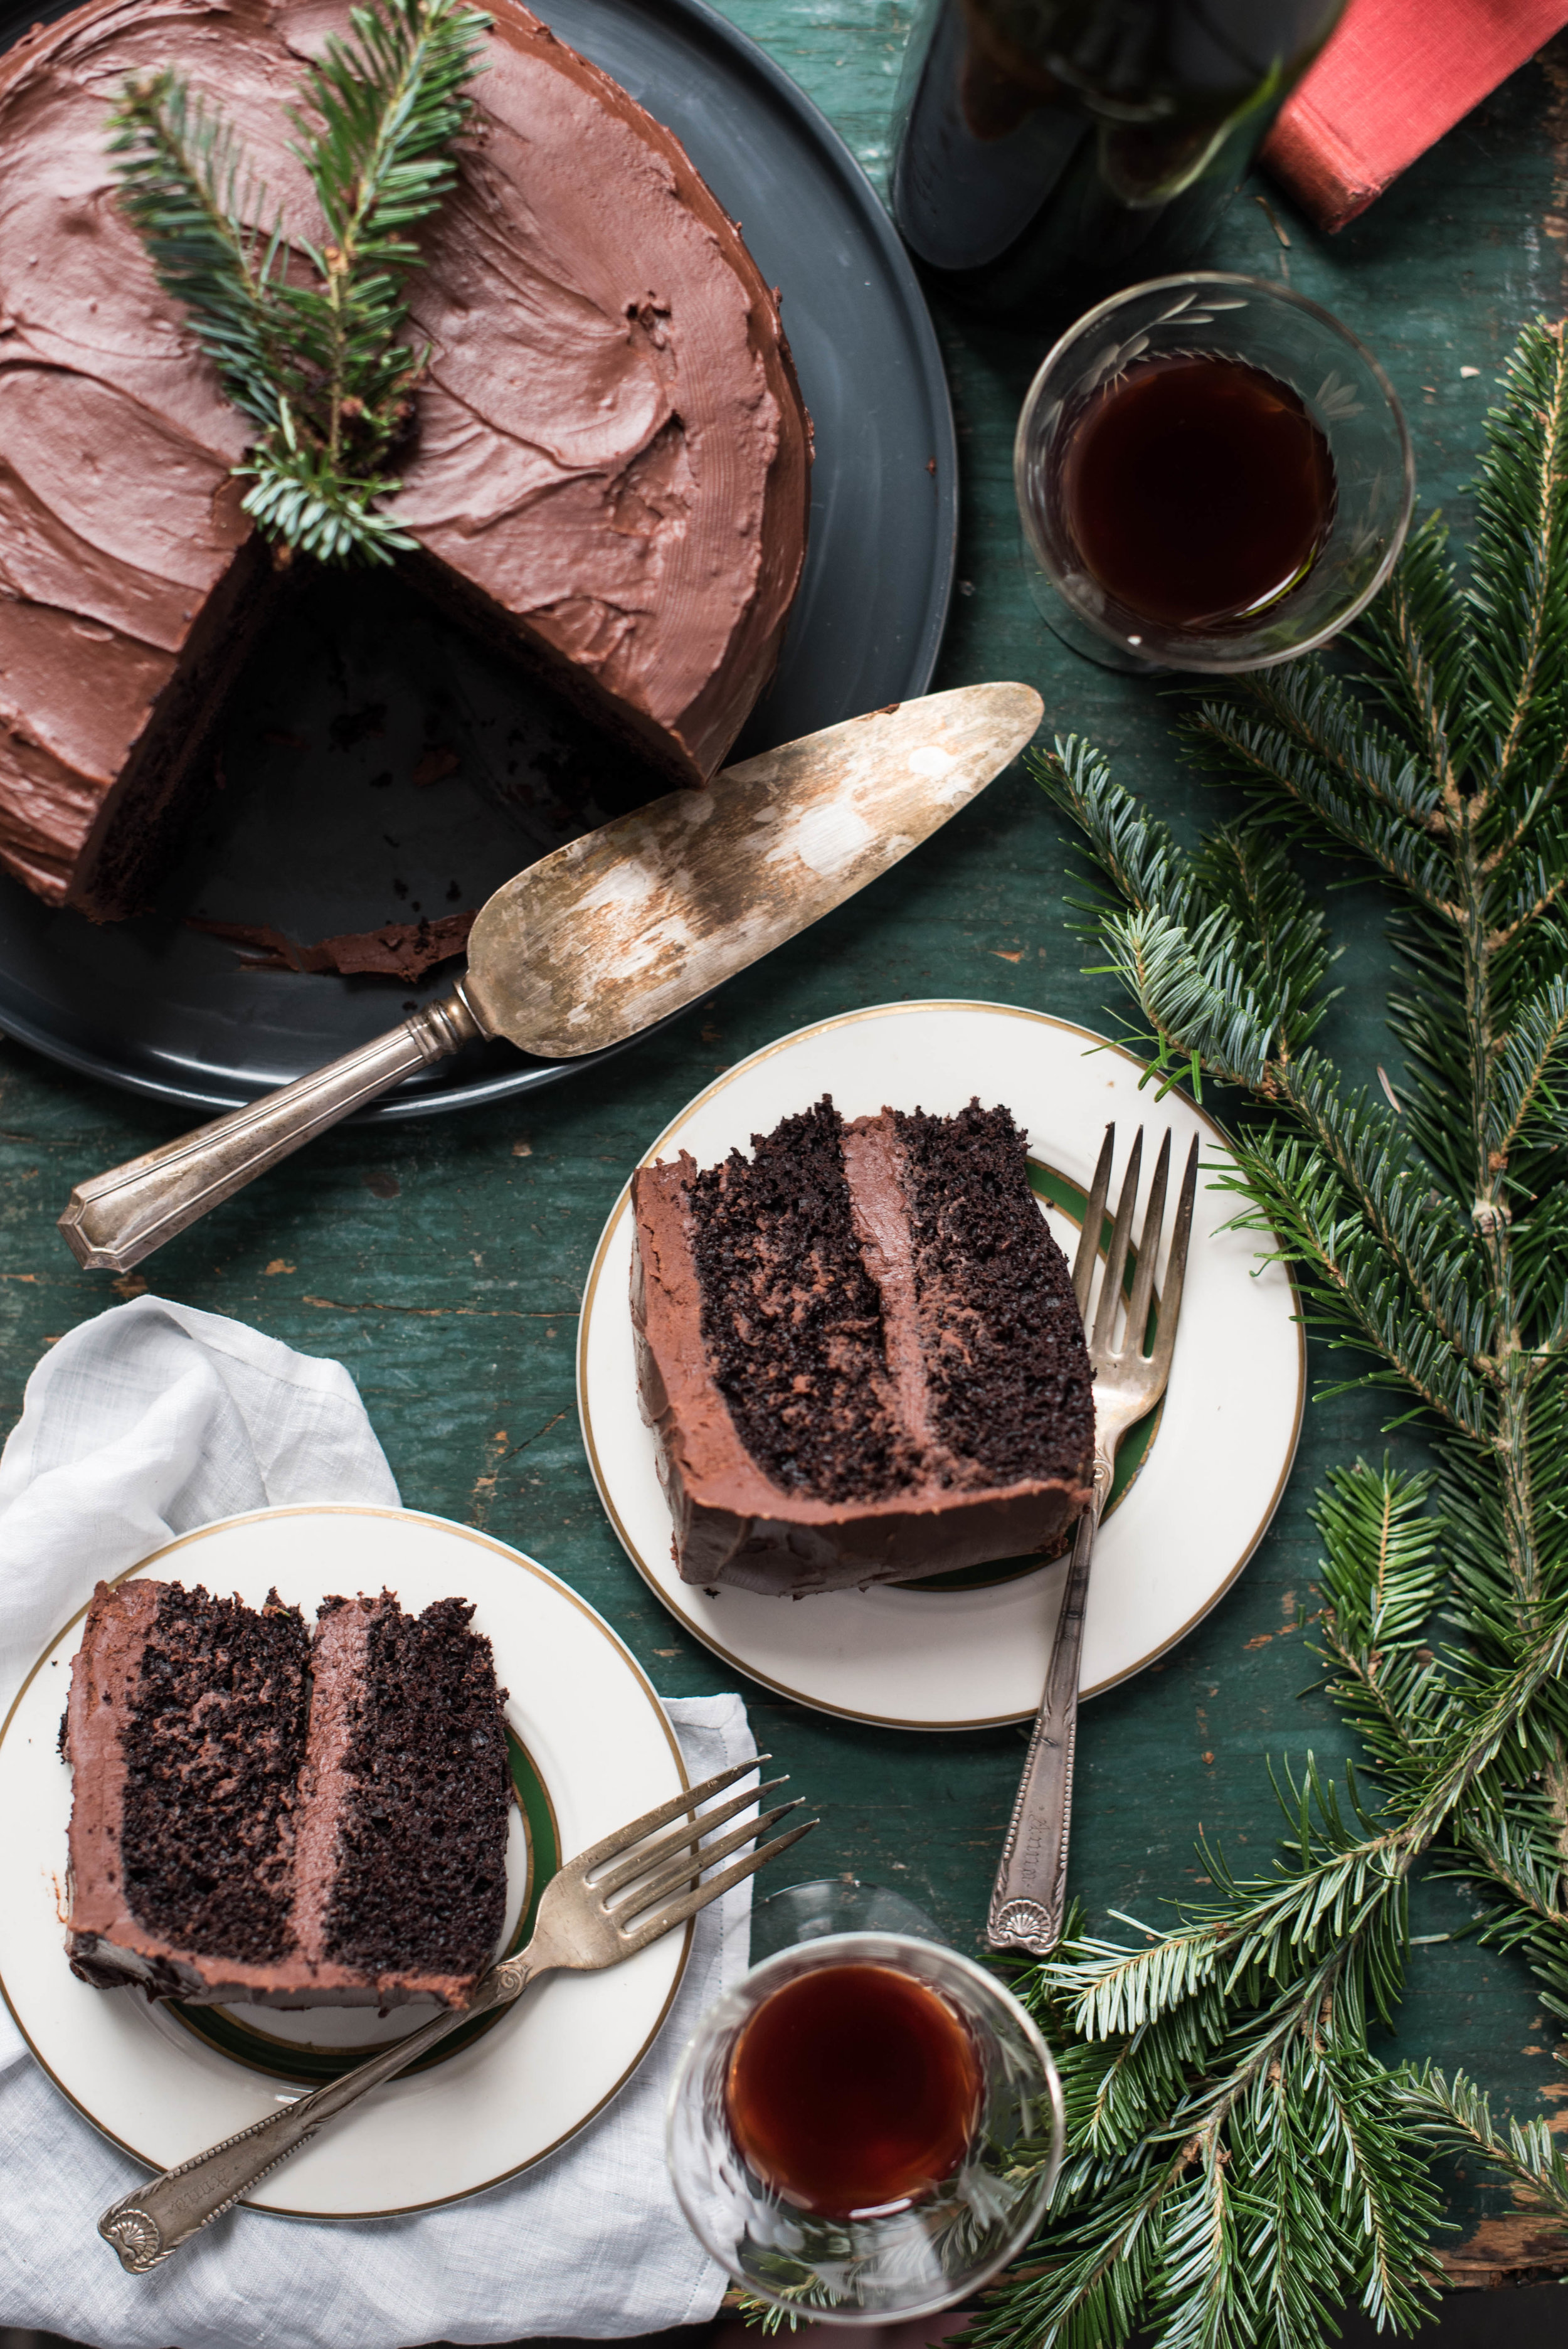 ROSE & IVY Journal Dark Chocolate Peppermint Cake & Holiday Traditions